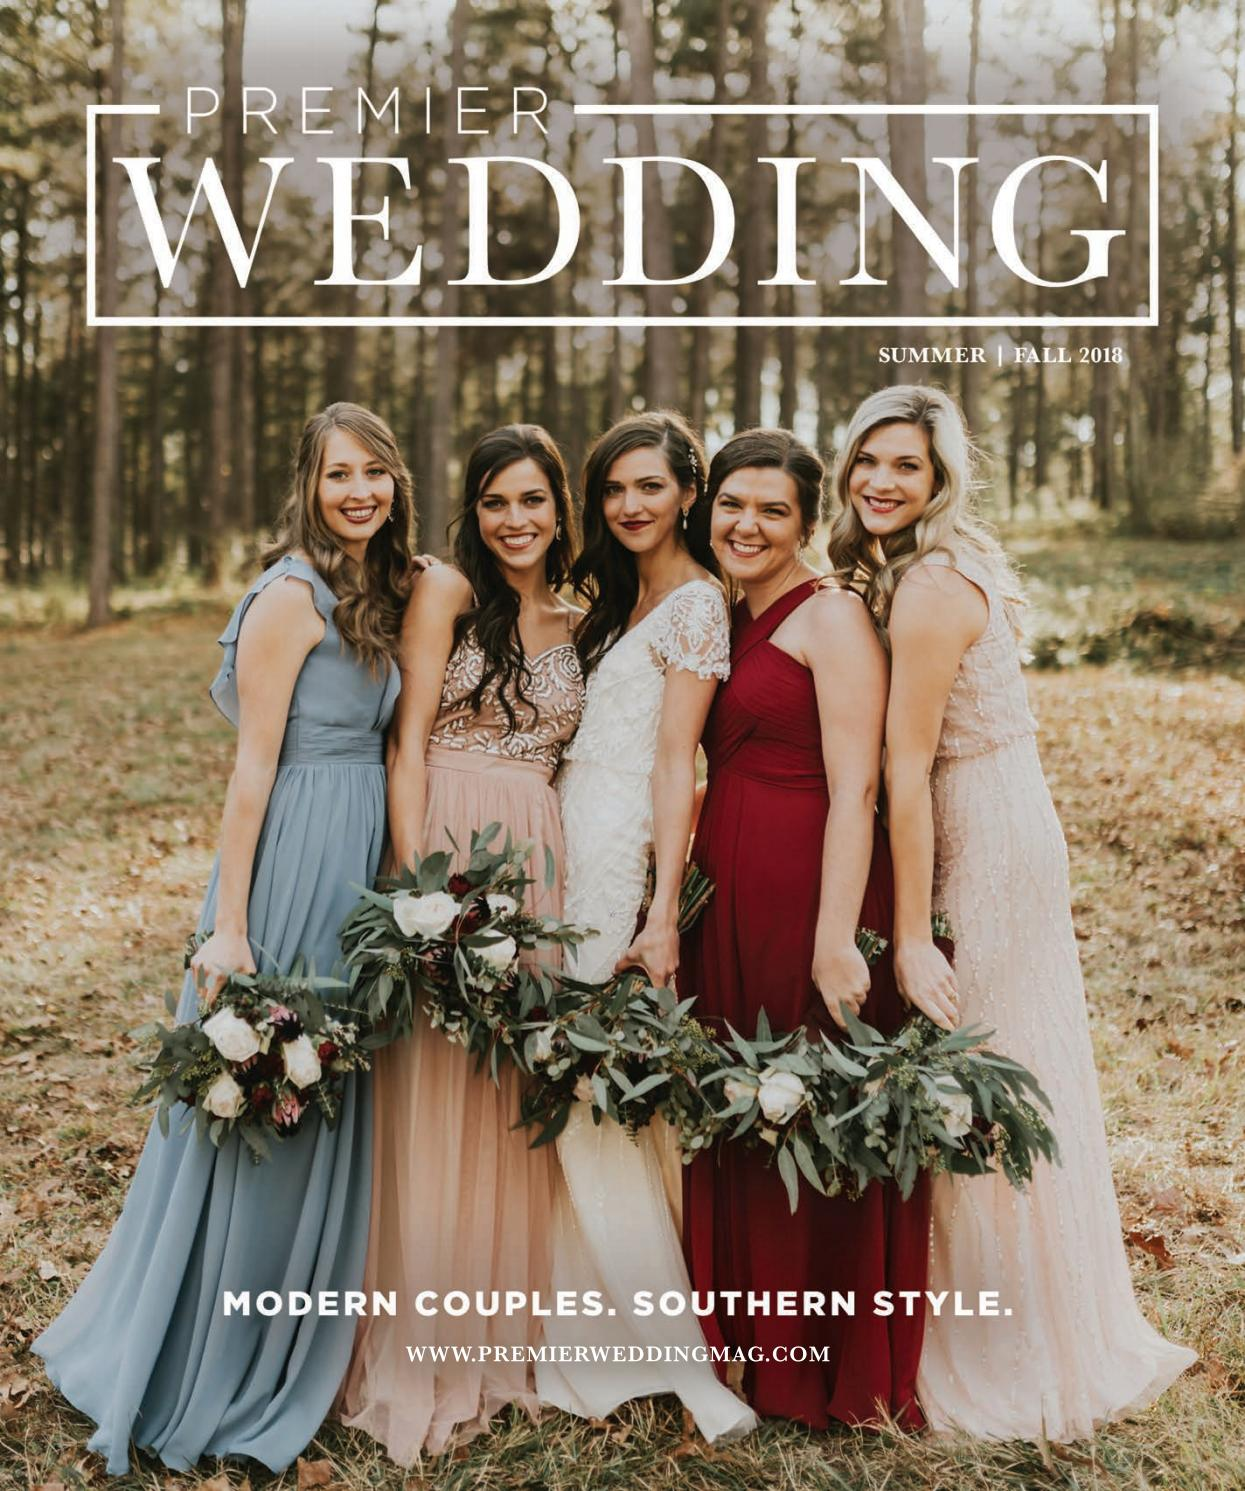 Premier Wedding Magazine Vol 33 Summer/Fall 2018 by Premier Wedding ...